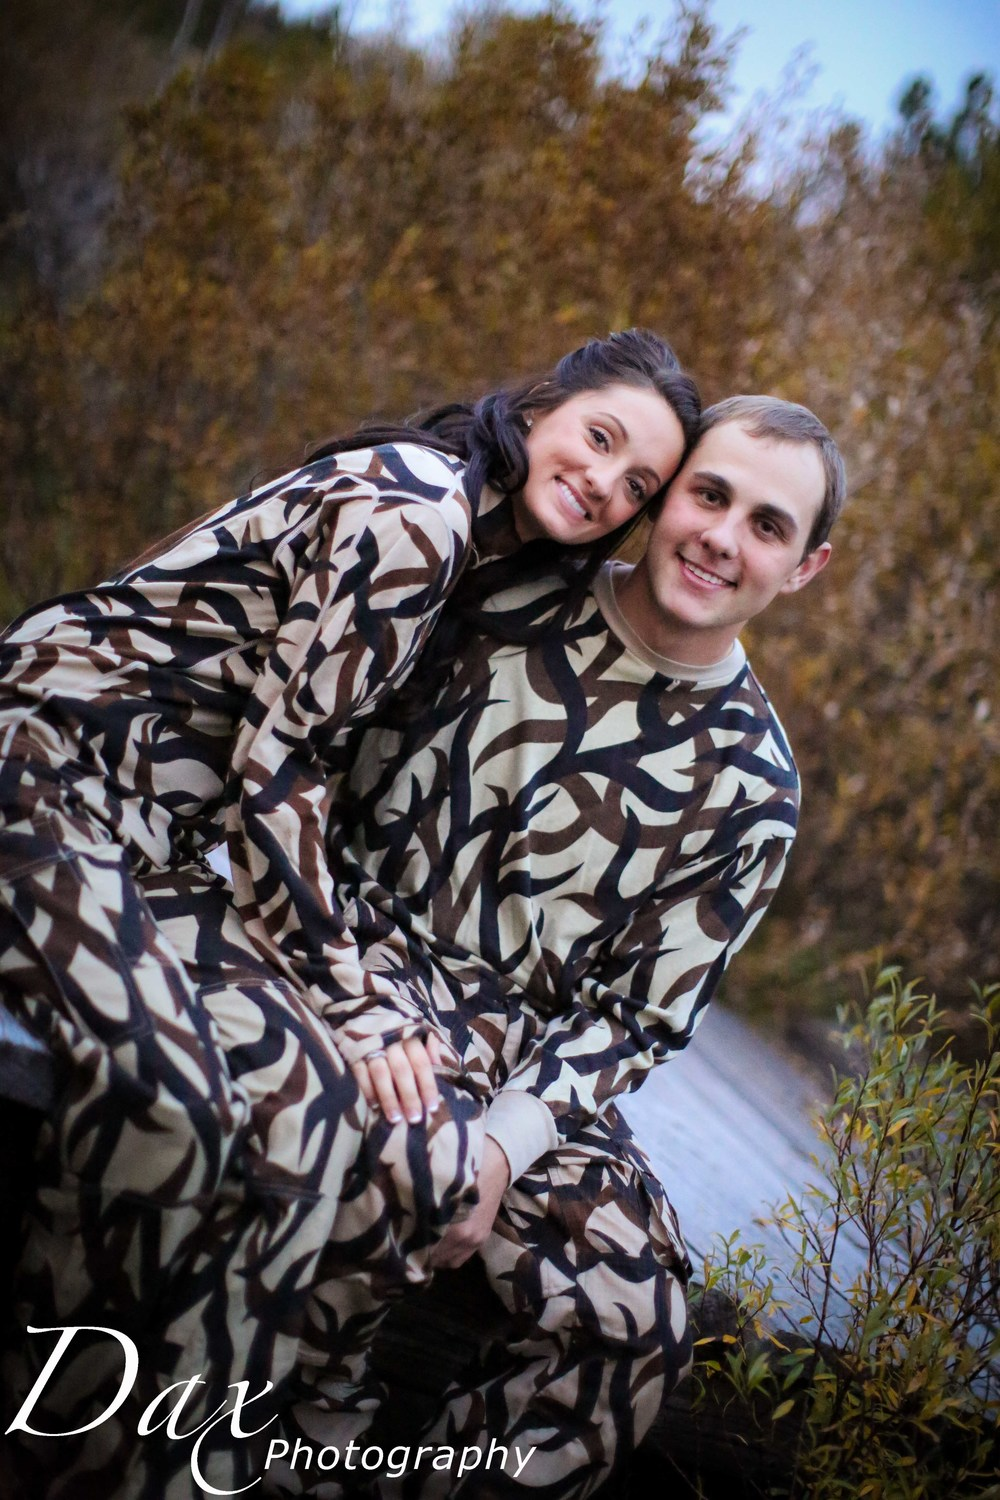 wpid-Montana-photographer-Engagement-Portrait-57831.jpg